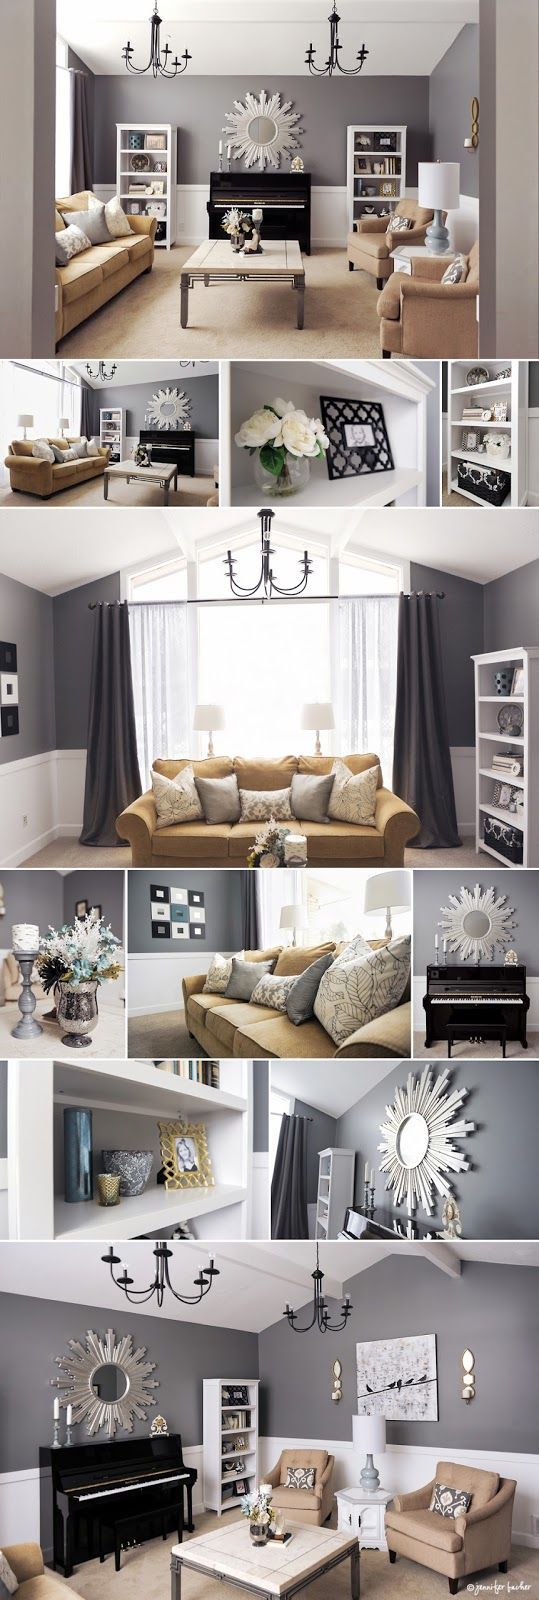 Ballard Design Gardner Village Down To Earth Gray White Black